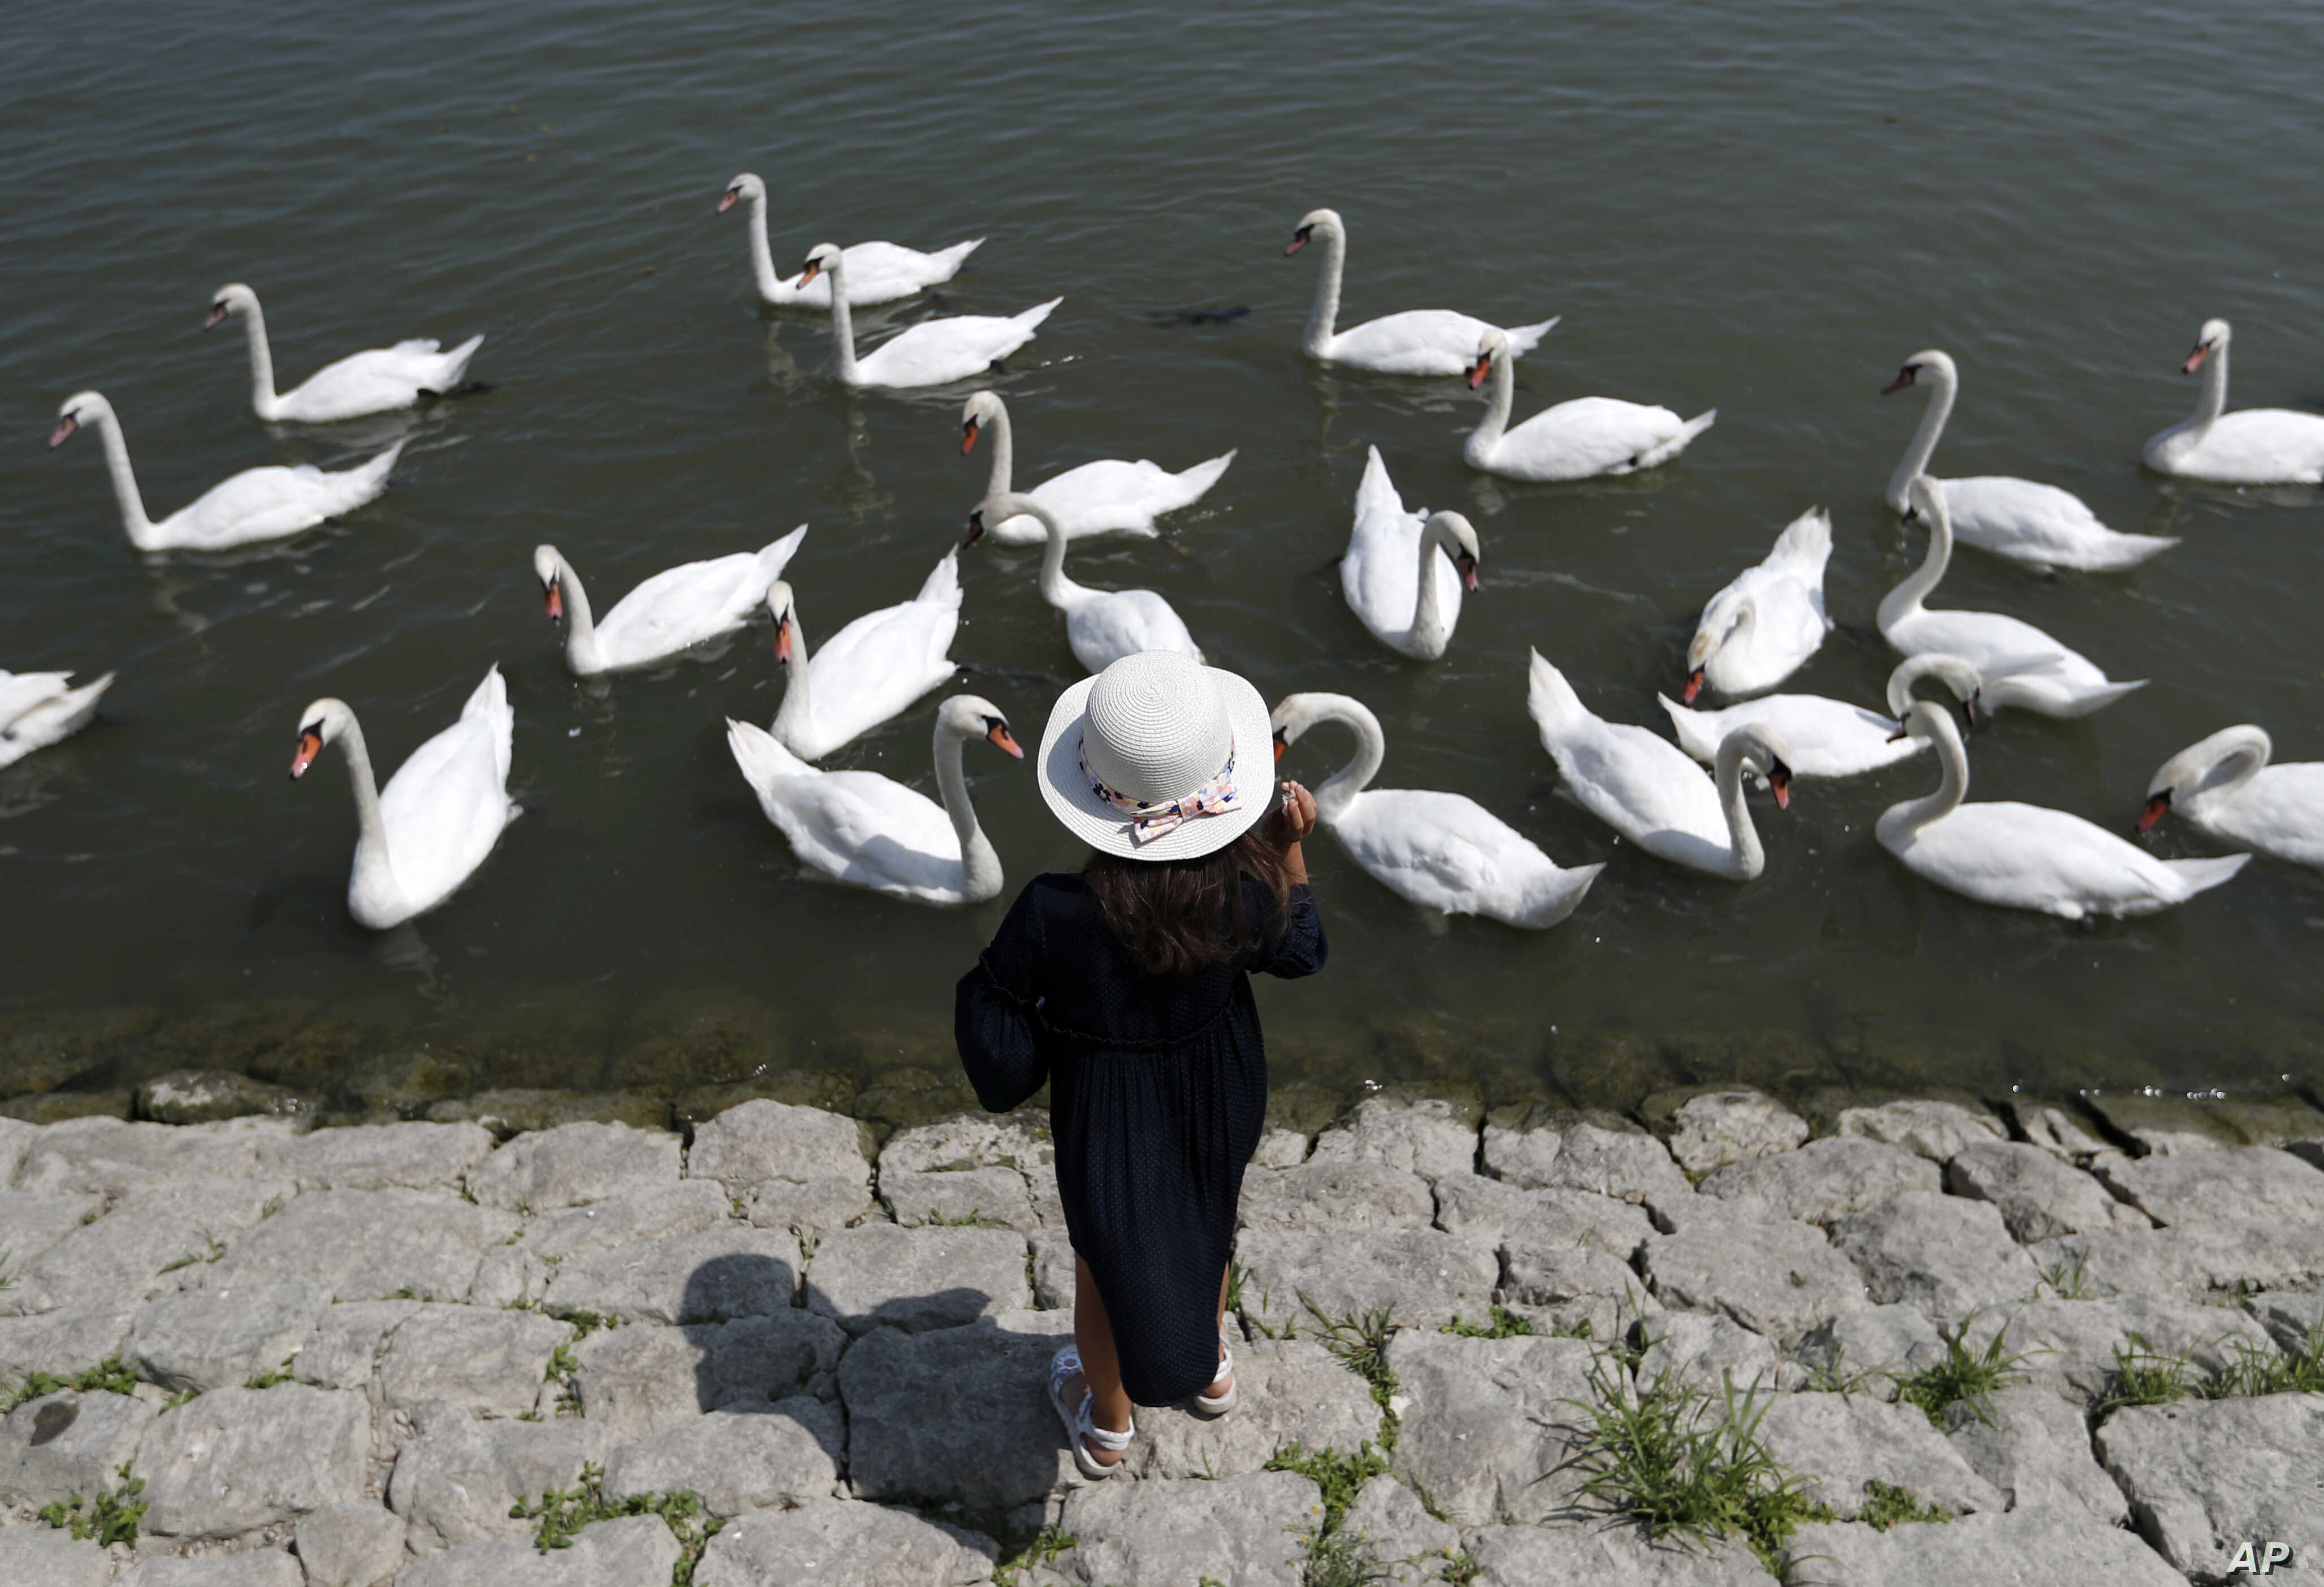 A girl feeds swans on the bank of the Danube river in Belgrade, Serbia.